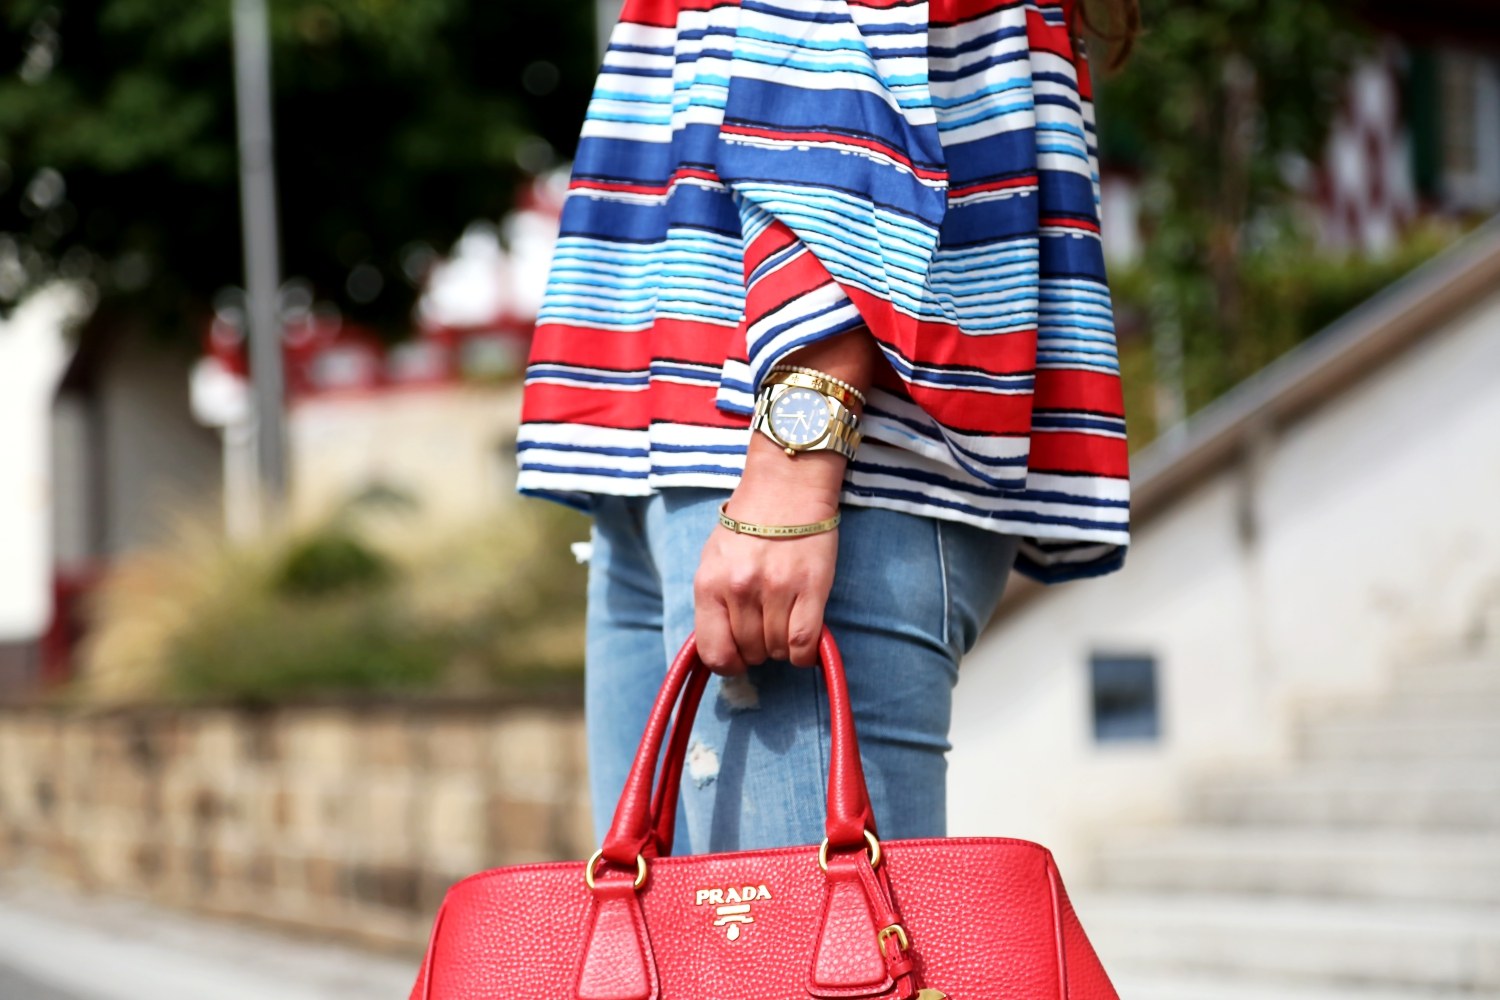 outfit-prada-bag-off-shoulder-blouse-red-blue-stripes-trend-summer